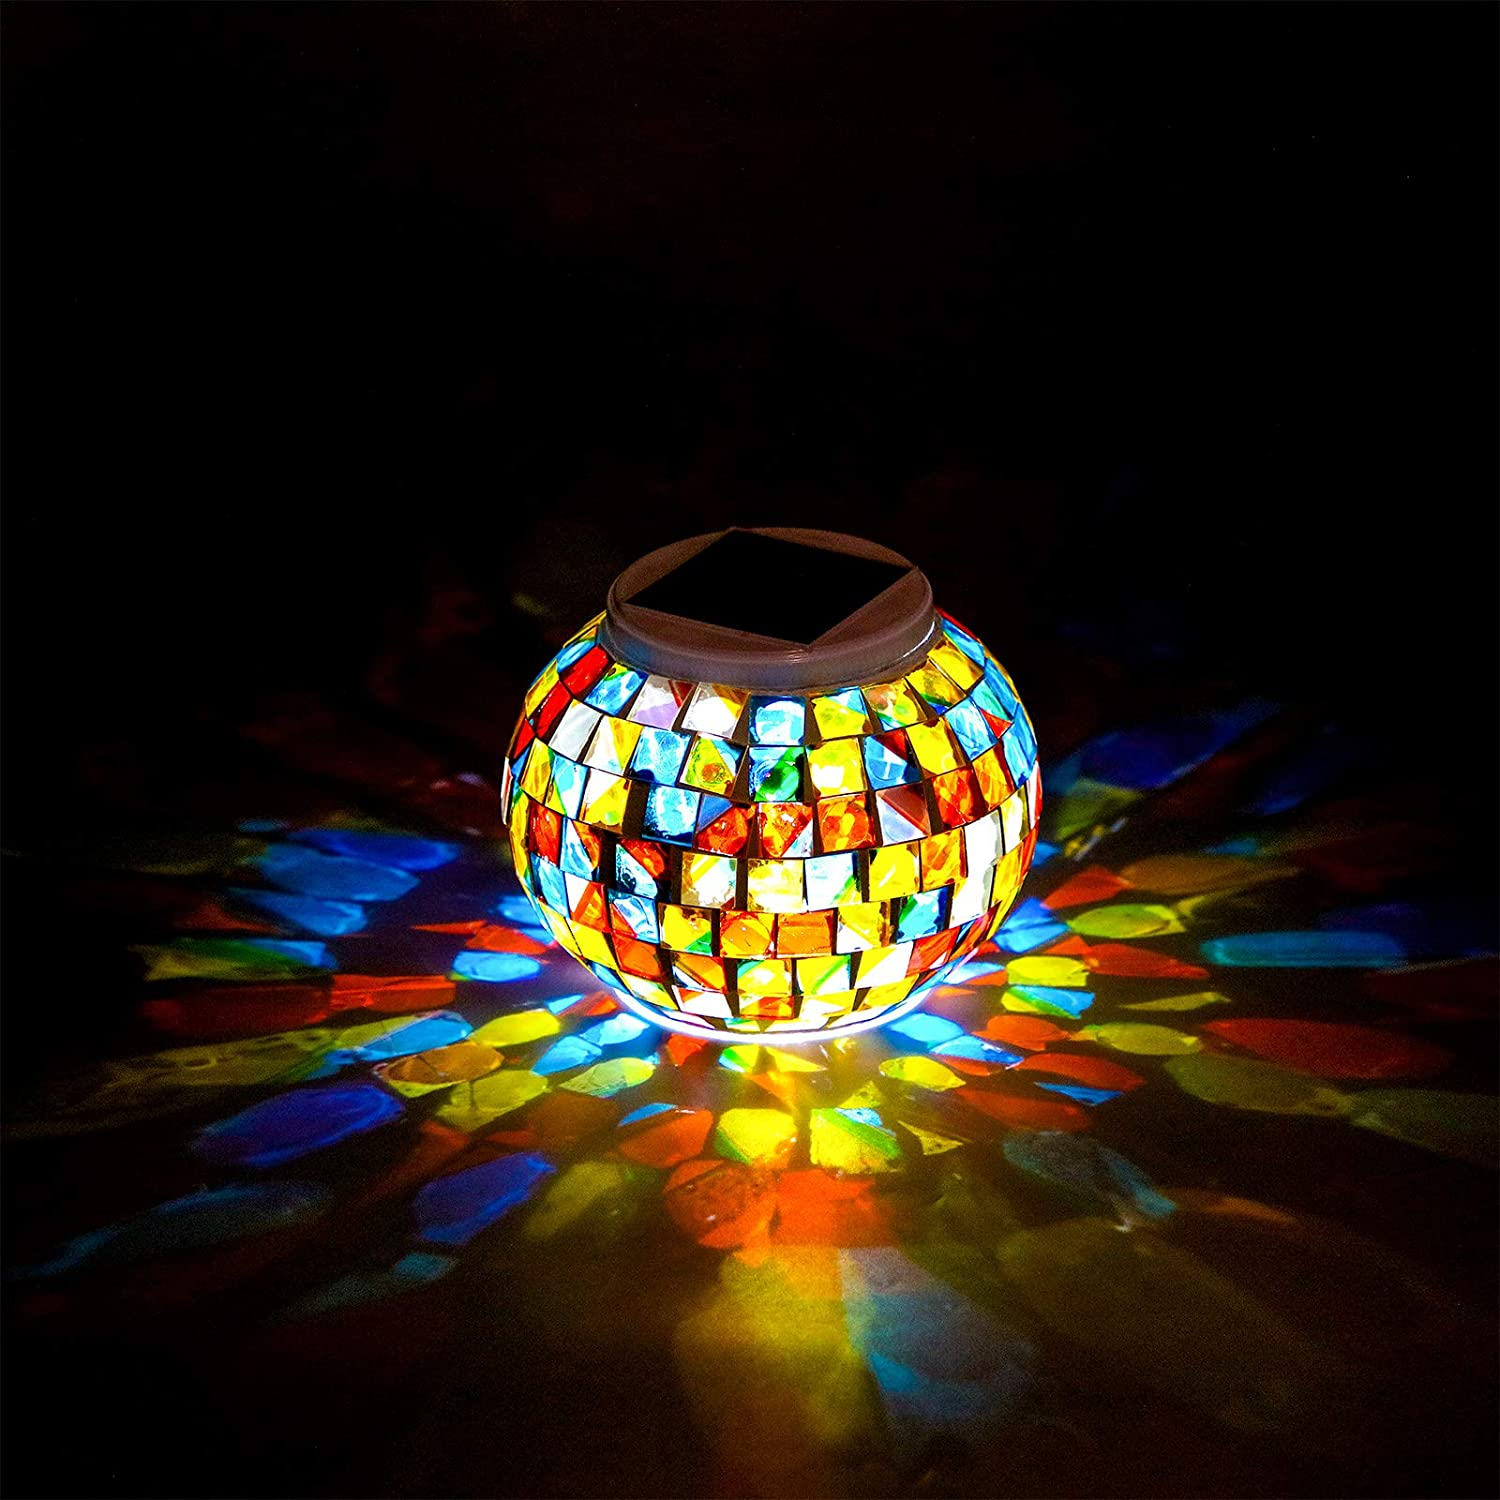 Color Changing Solar Powered Glass Mosaic Ball Garden LED Lights, Waterproof Rechargeable Solar Table Lights for Garden, Patio, Party, Yard, Outdoor/Indoor Decorations Presents (Colorful Style)